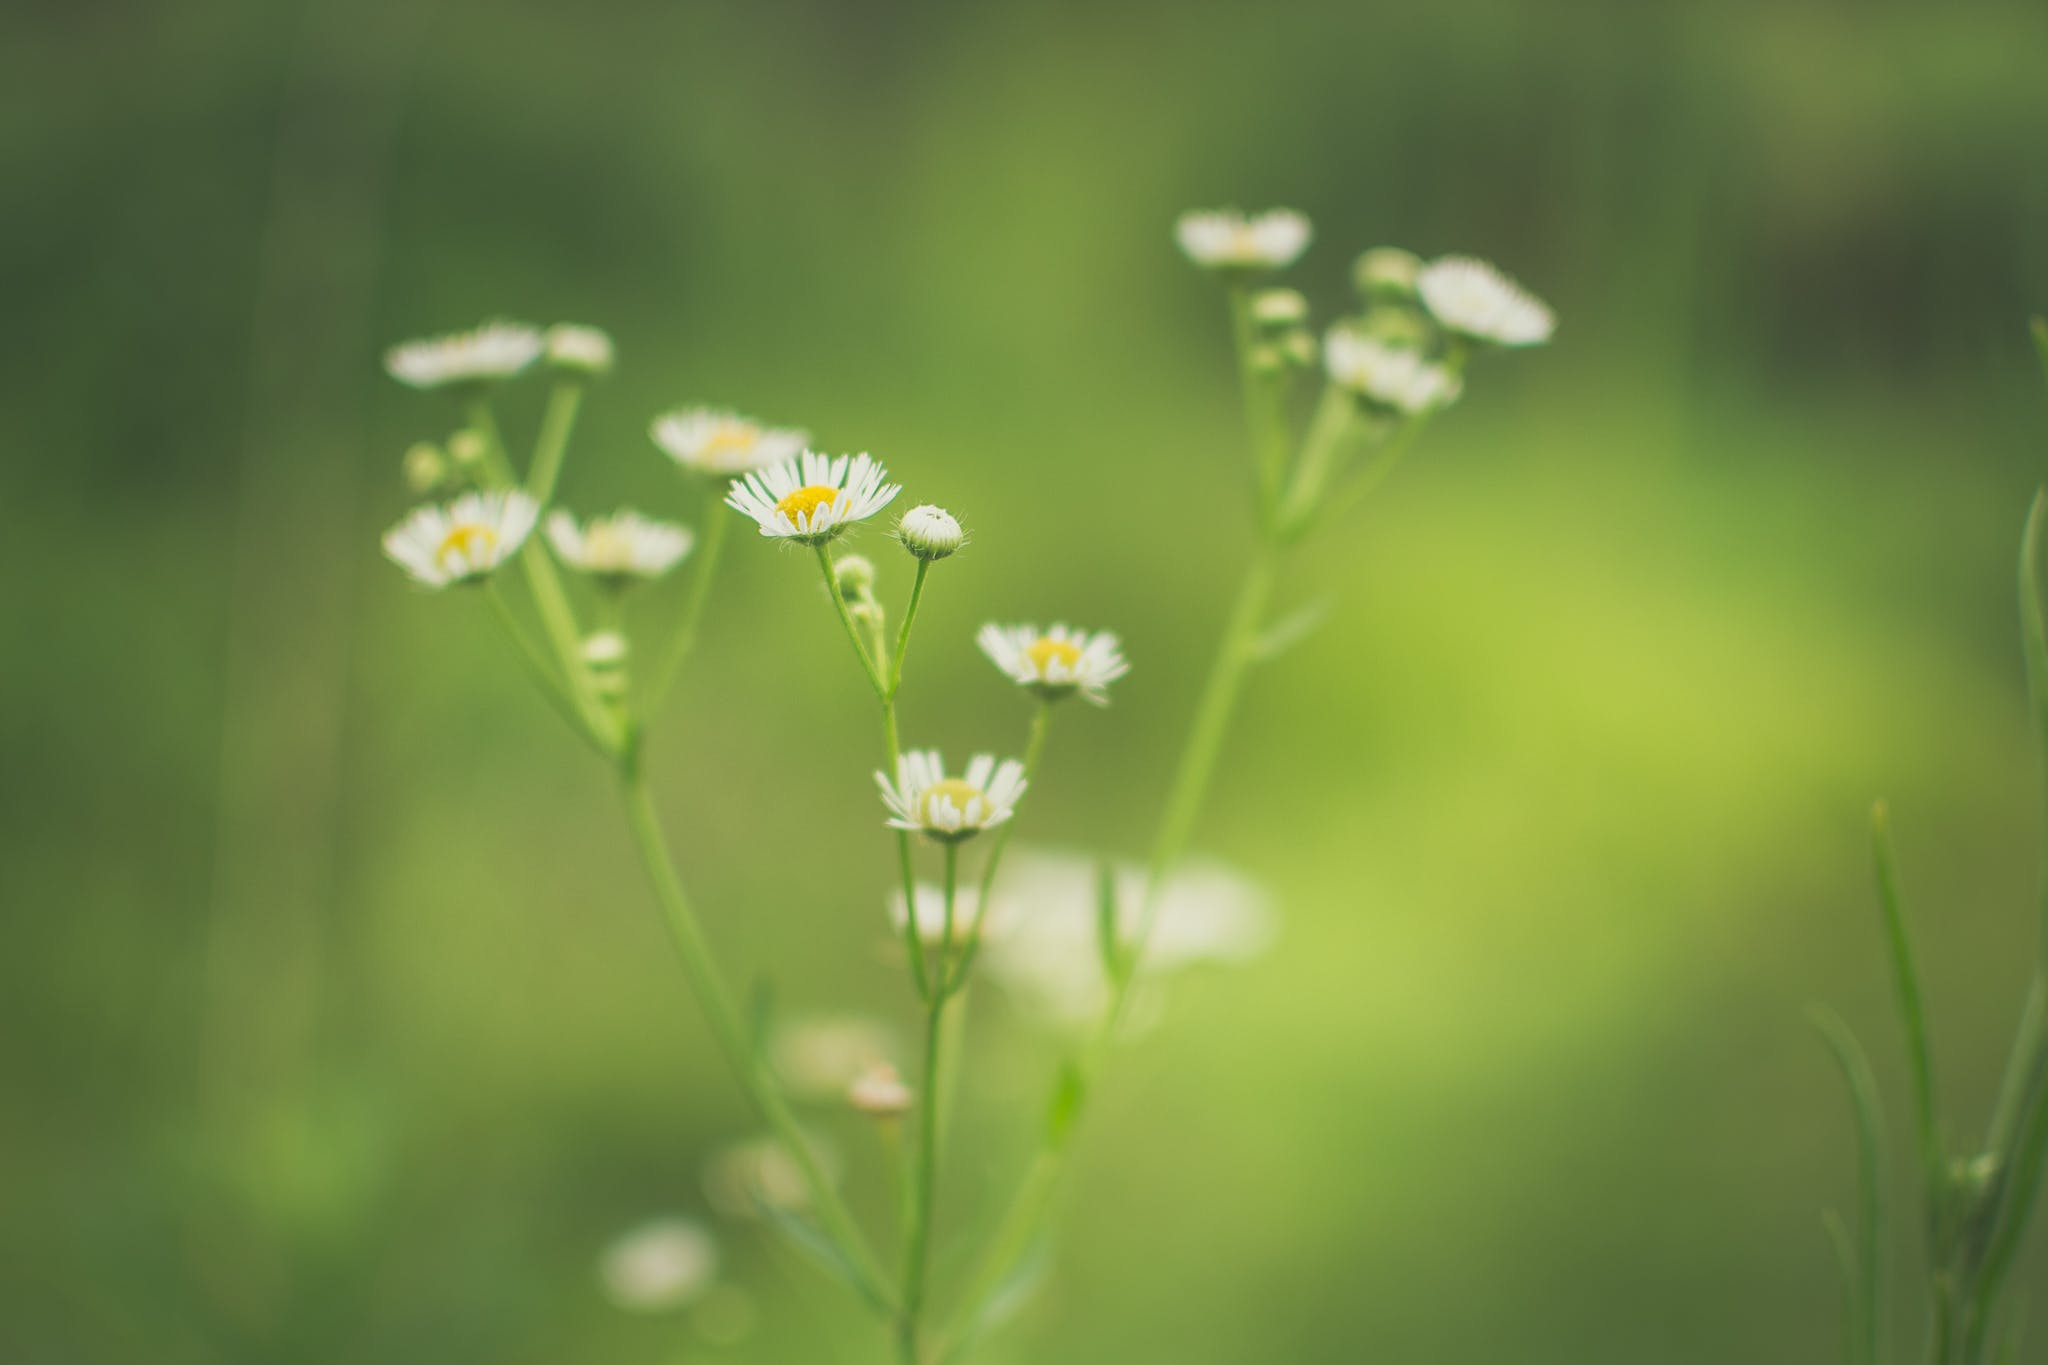 Free stock photo of nature, spring, flower, green